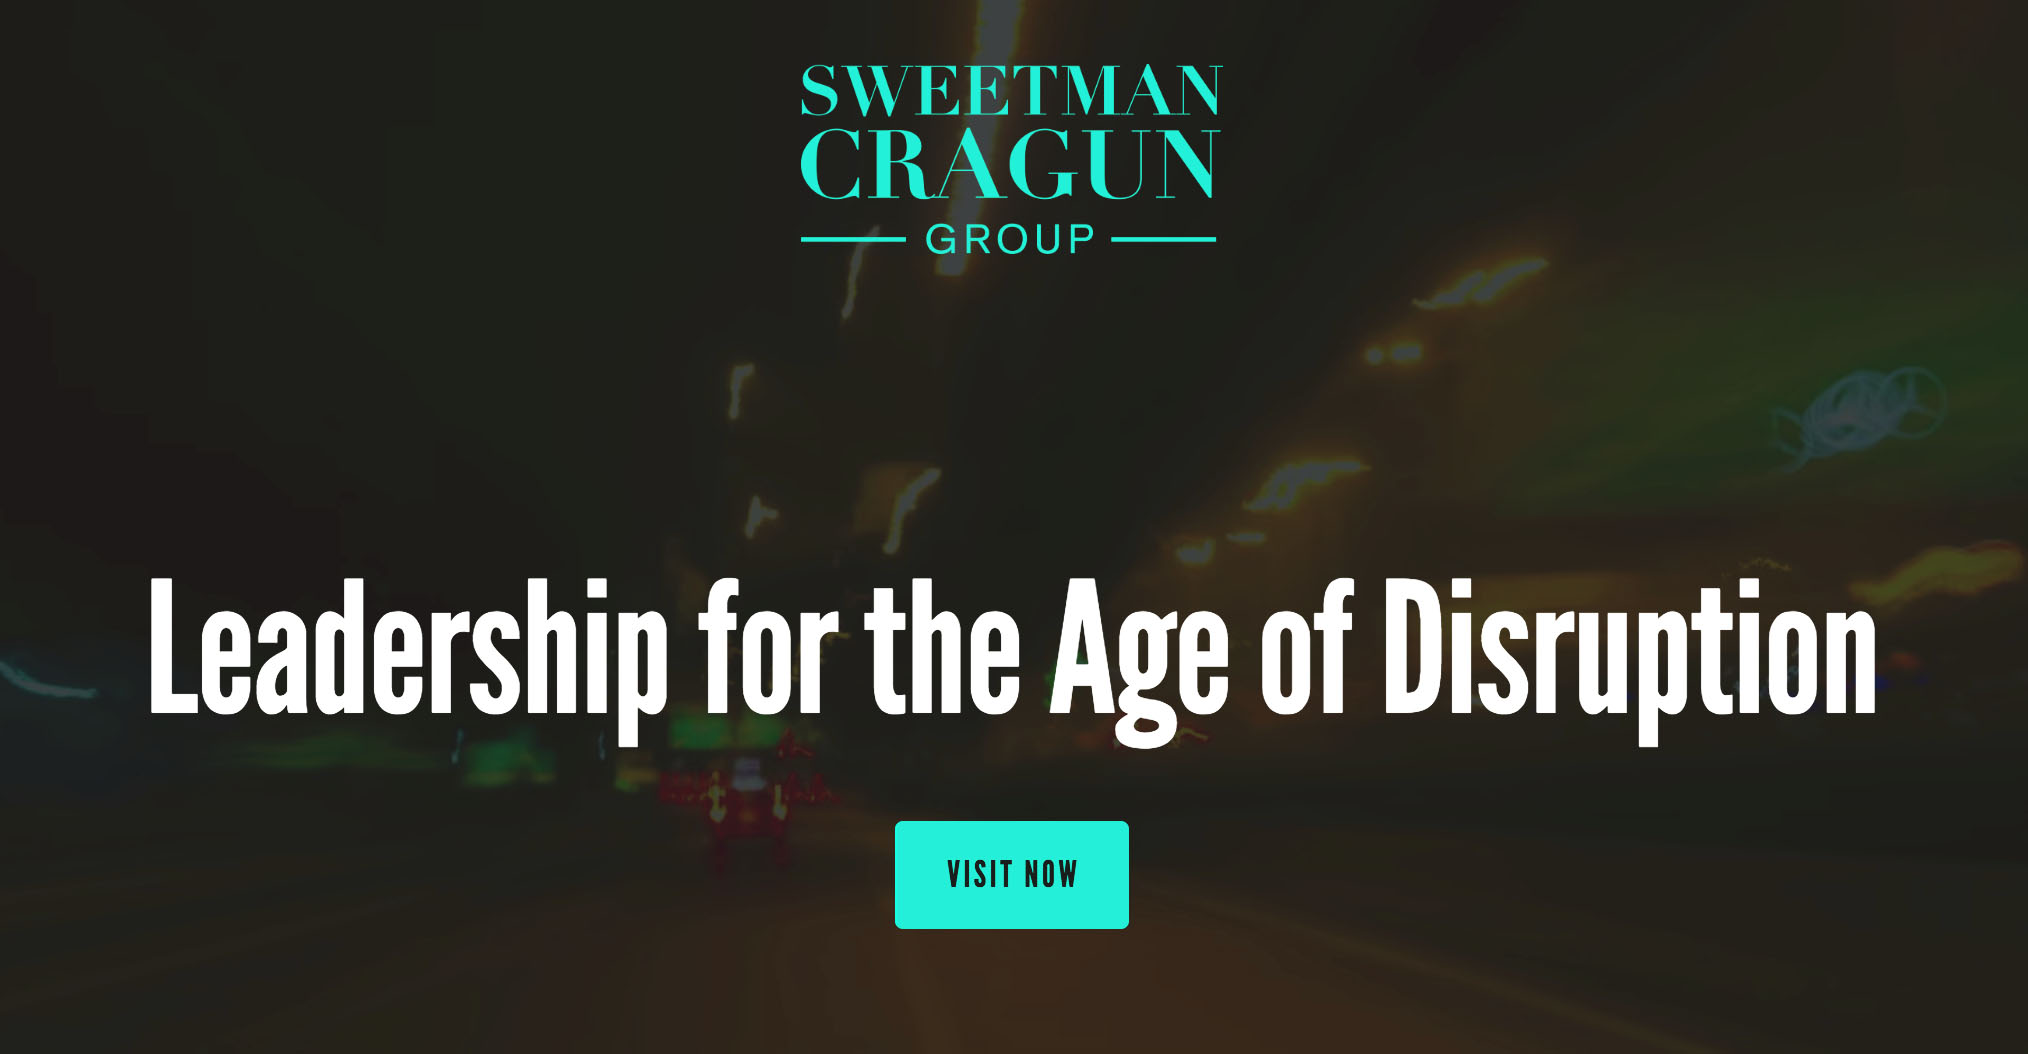 SweetmanCragun Website